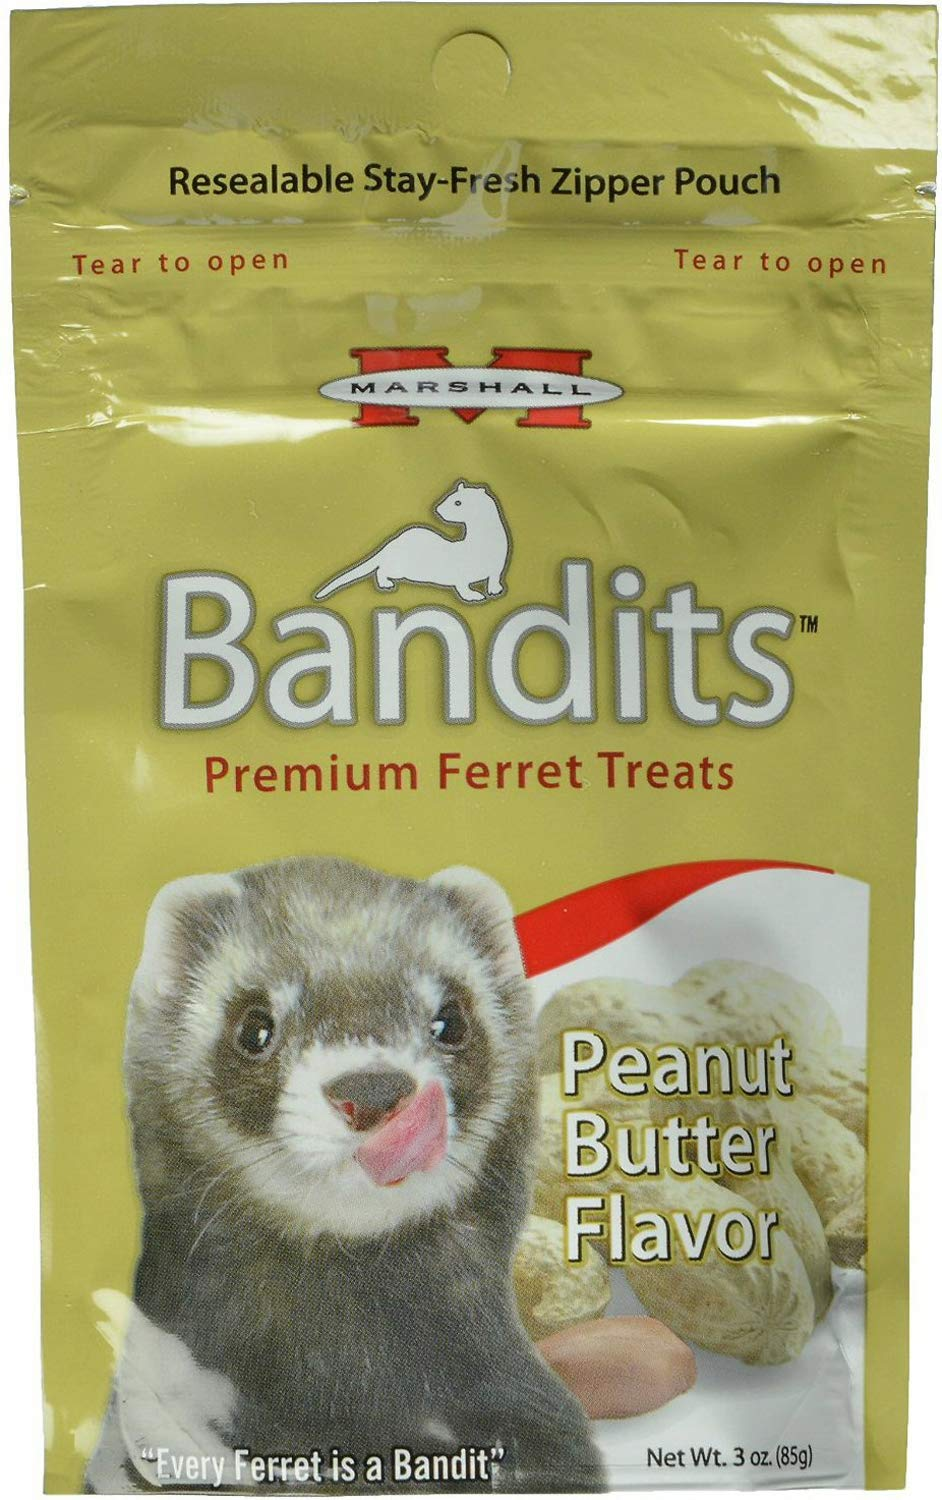 Marshall Bandits Ferret Treat Peanut Butter 1.875lbs (10 x 3oz) by Marshall